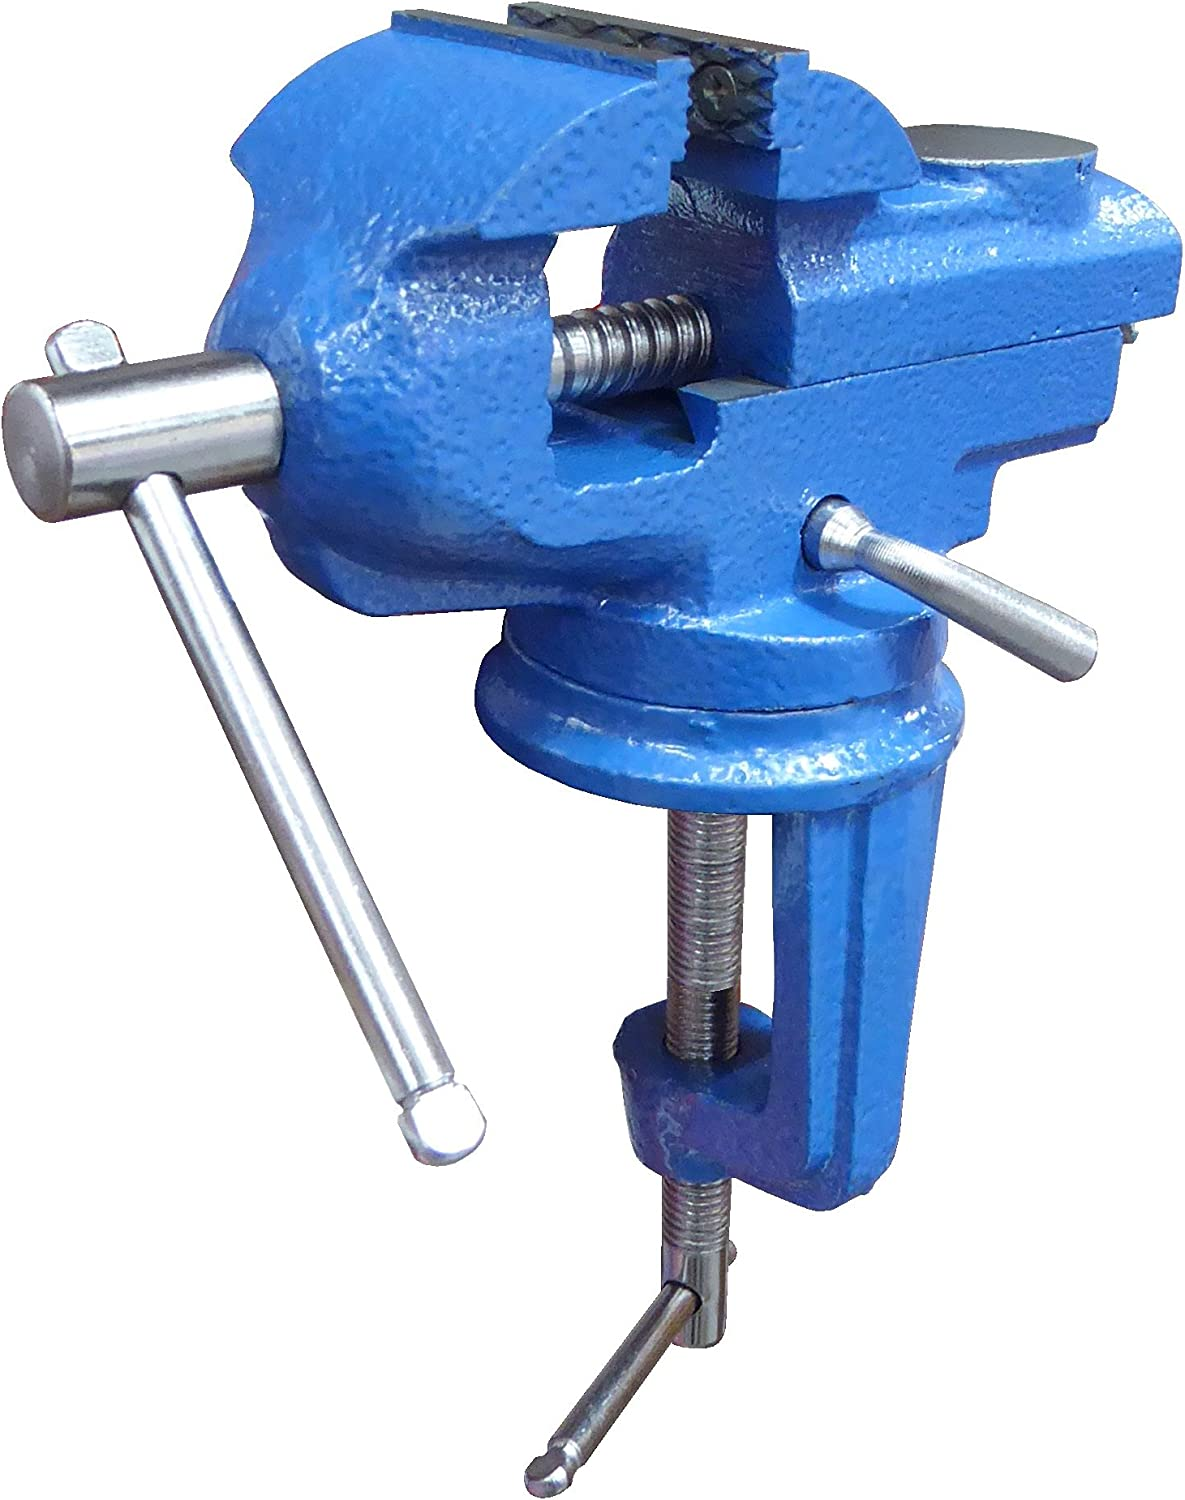 Small Clamp on Work Bench Vise with 5 ☆ very popular and Base Milwaukee Mall Anvil Swivel